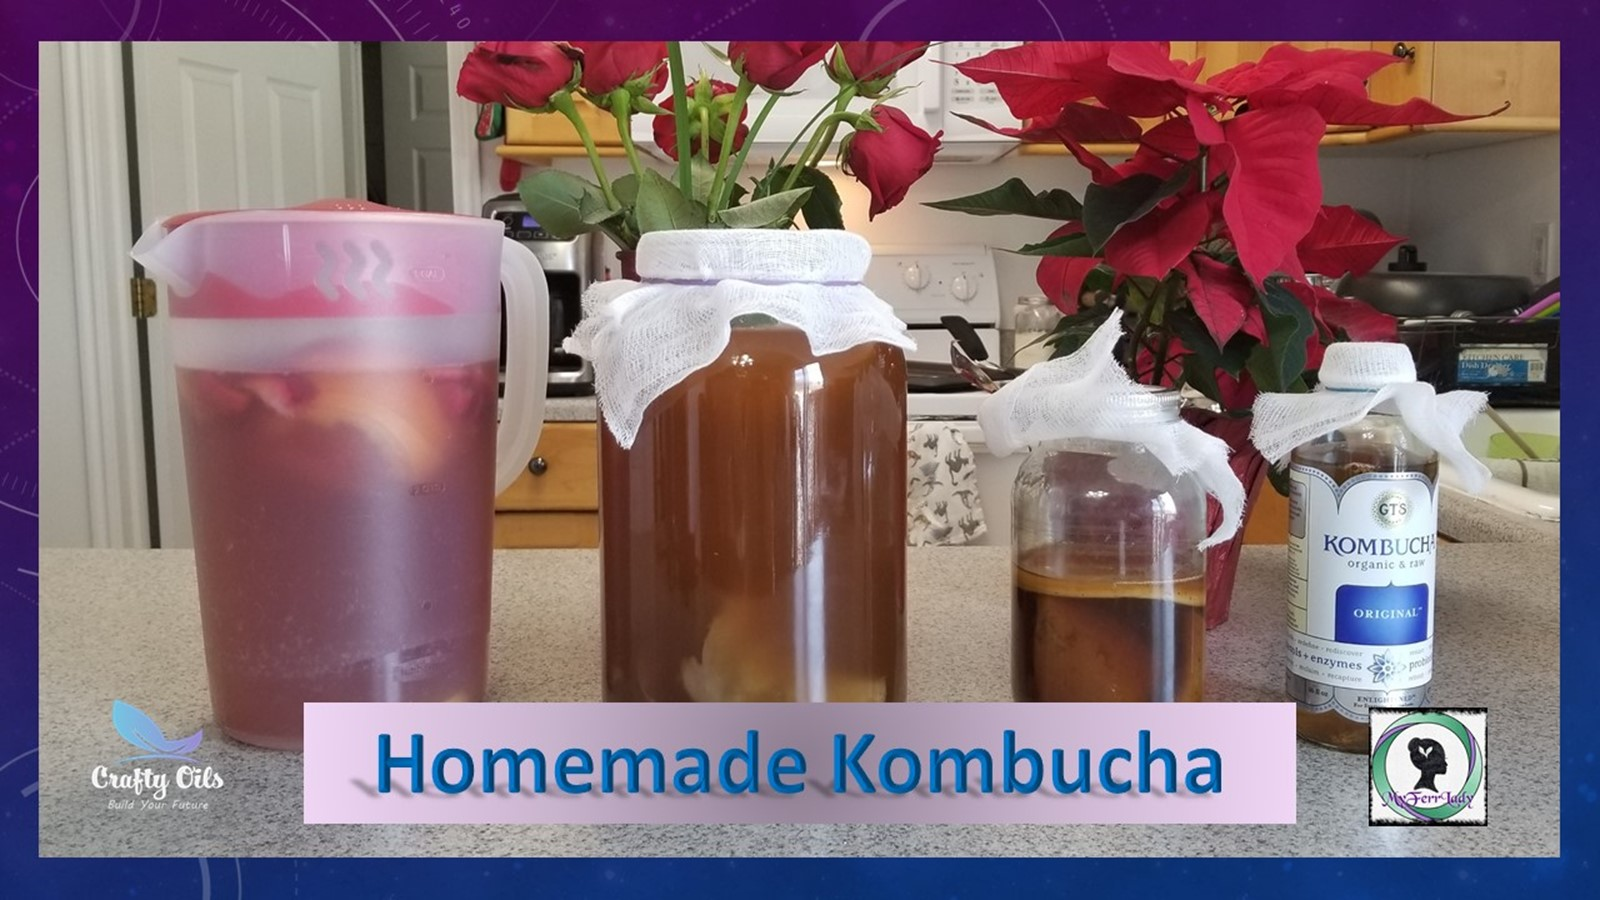 For Complete step by step instructions can be found at https://www.craftyoils.com/diy-homemade-kombucha/